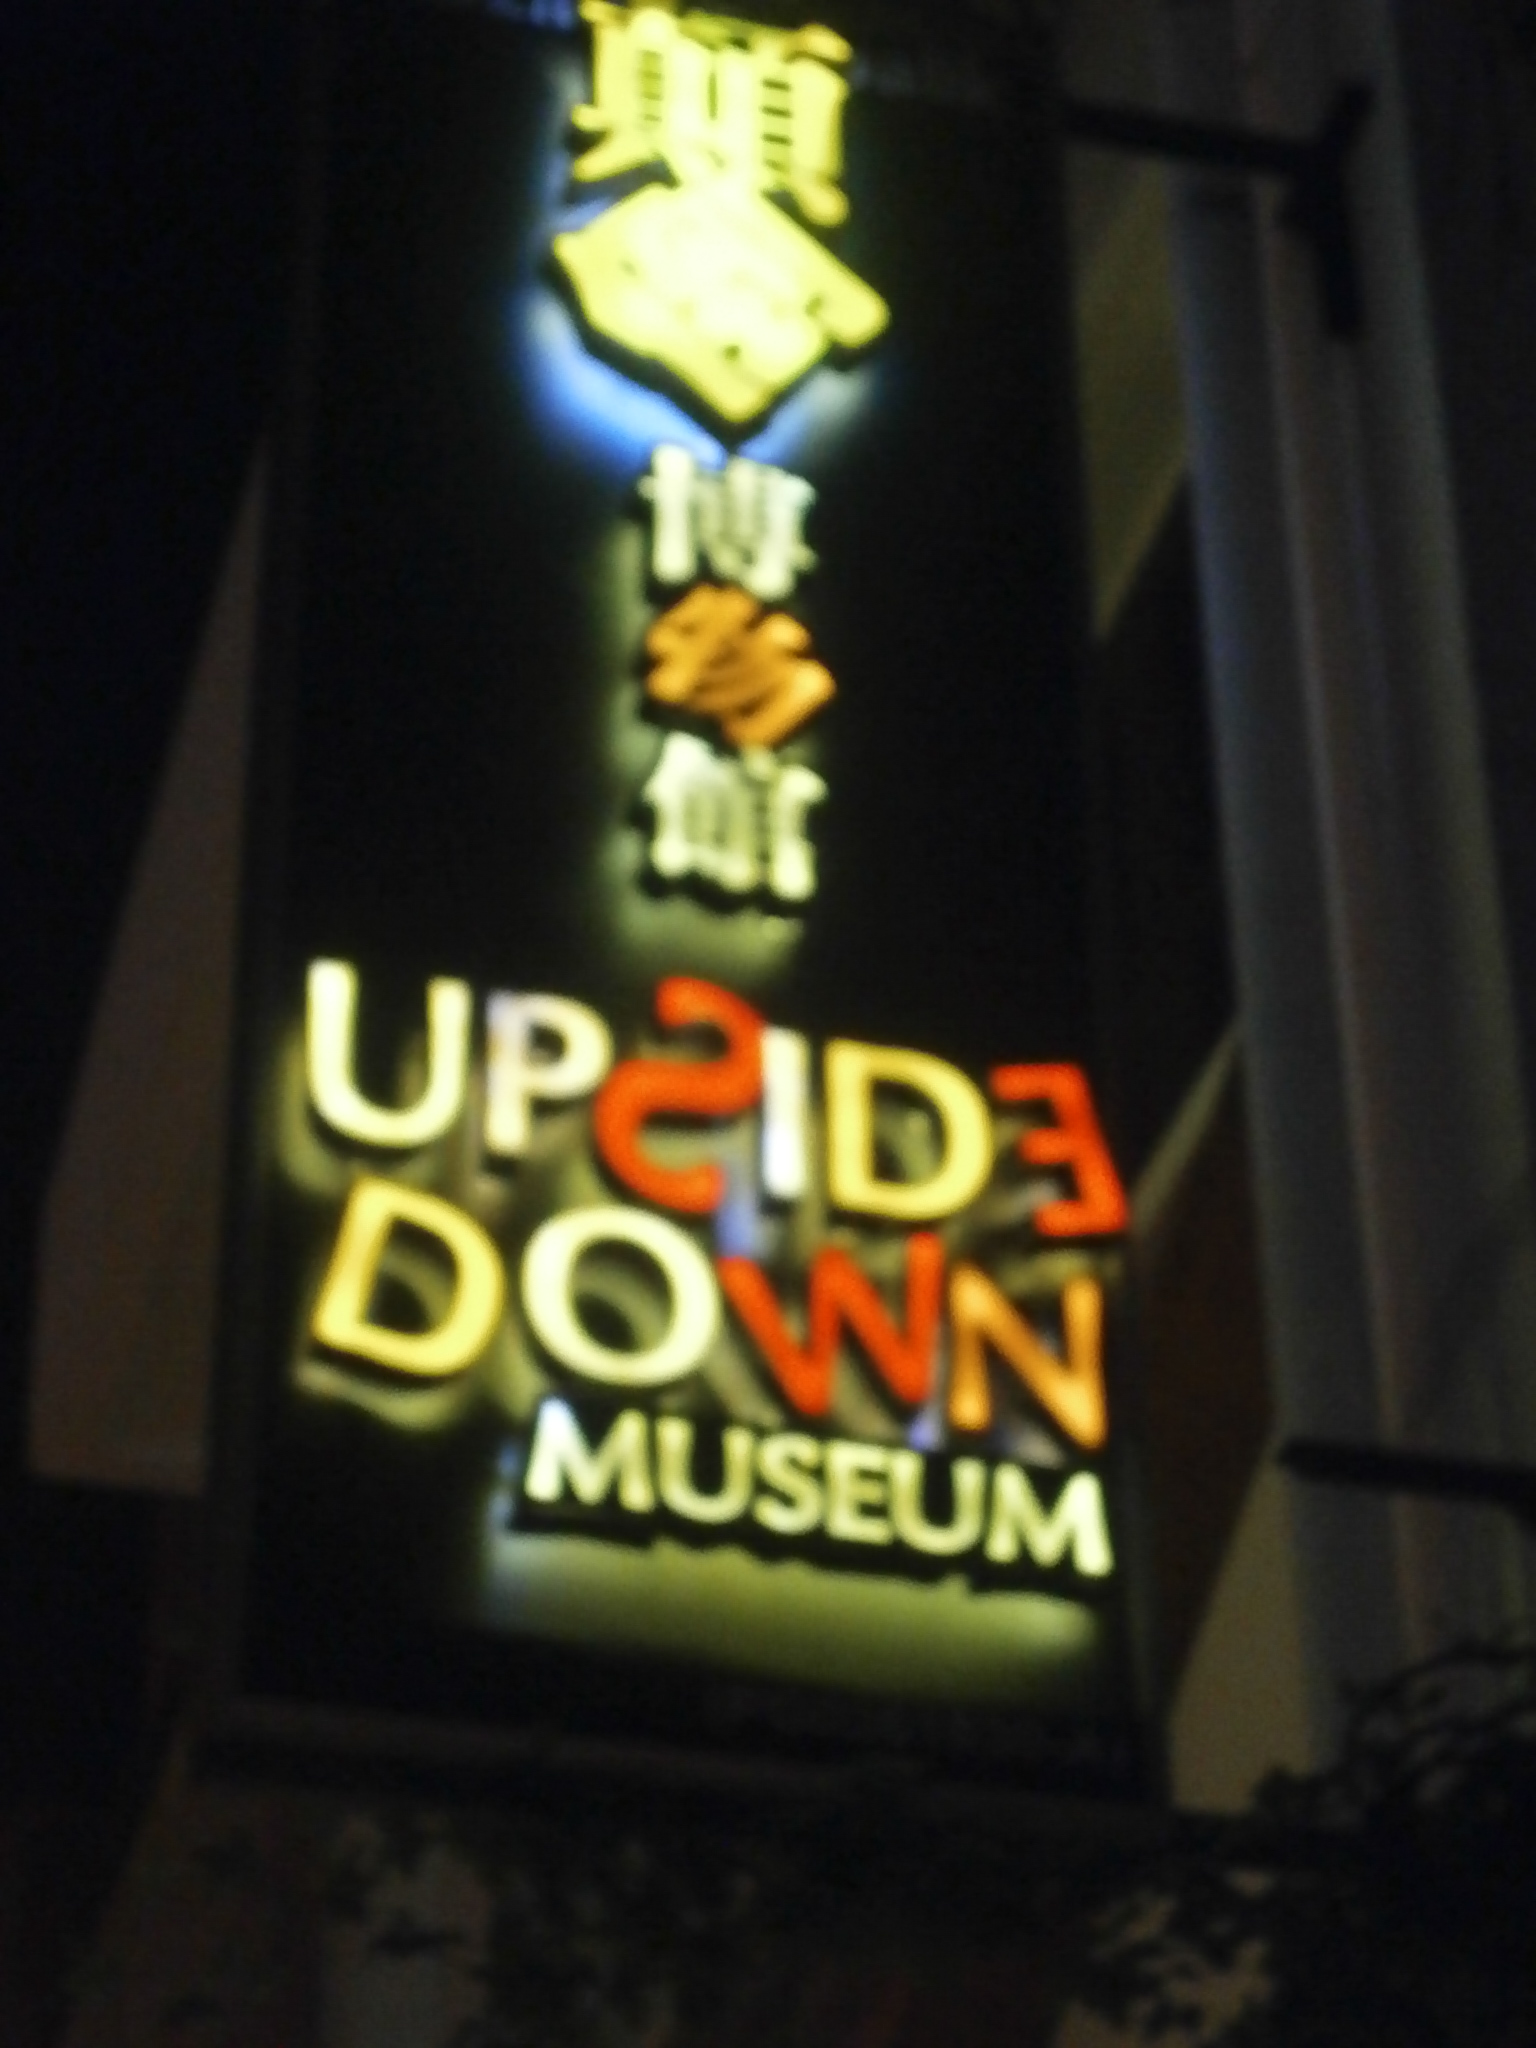 I would have loved to visit this Upside Down Museum, But we didn't have much time.  ;re staying here in Georgetown only for one night.  I believe there are still so many things to explore around here.